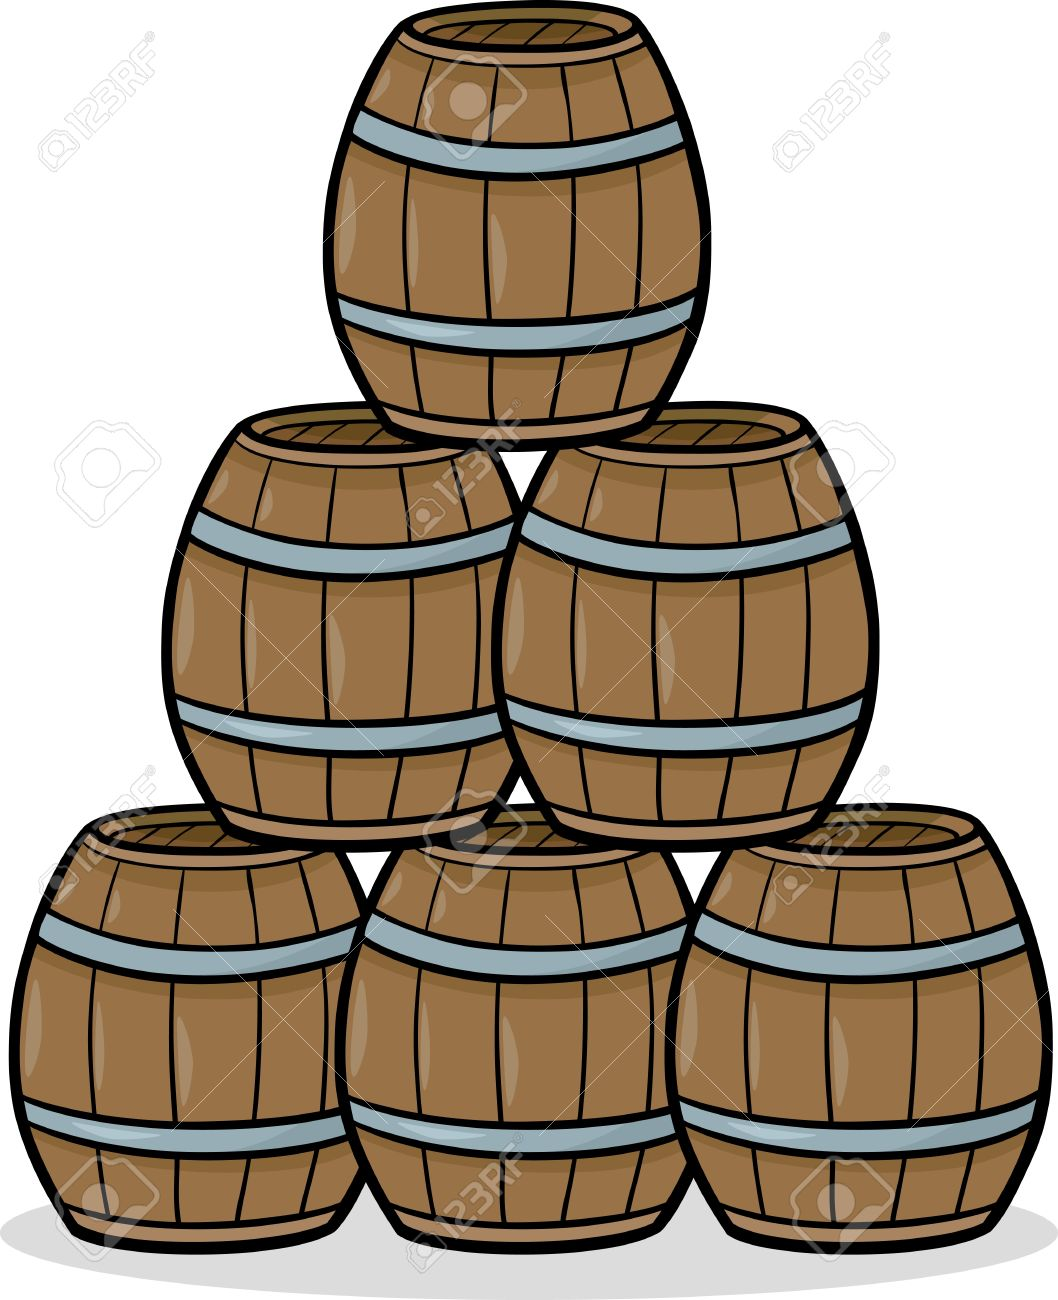 Cartoon Illustration Of Wooden Barrels In A Heap Royalty Free.